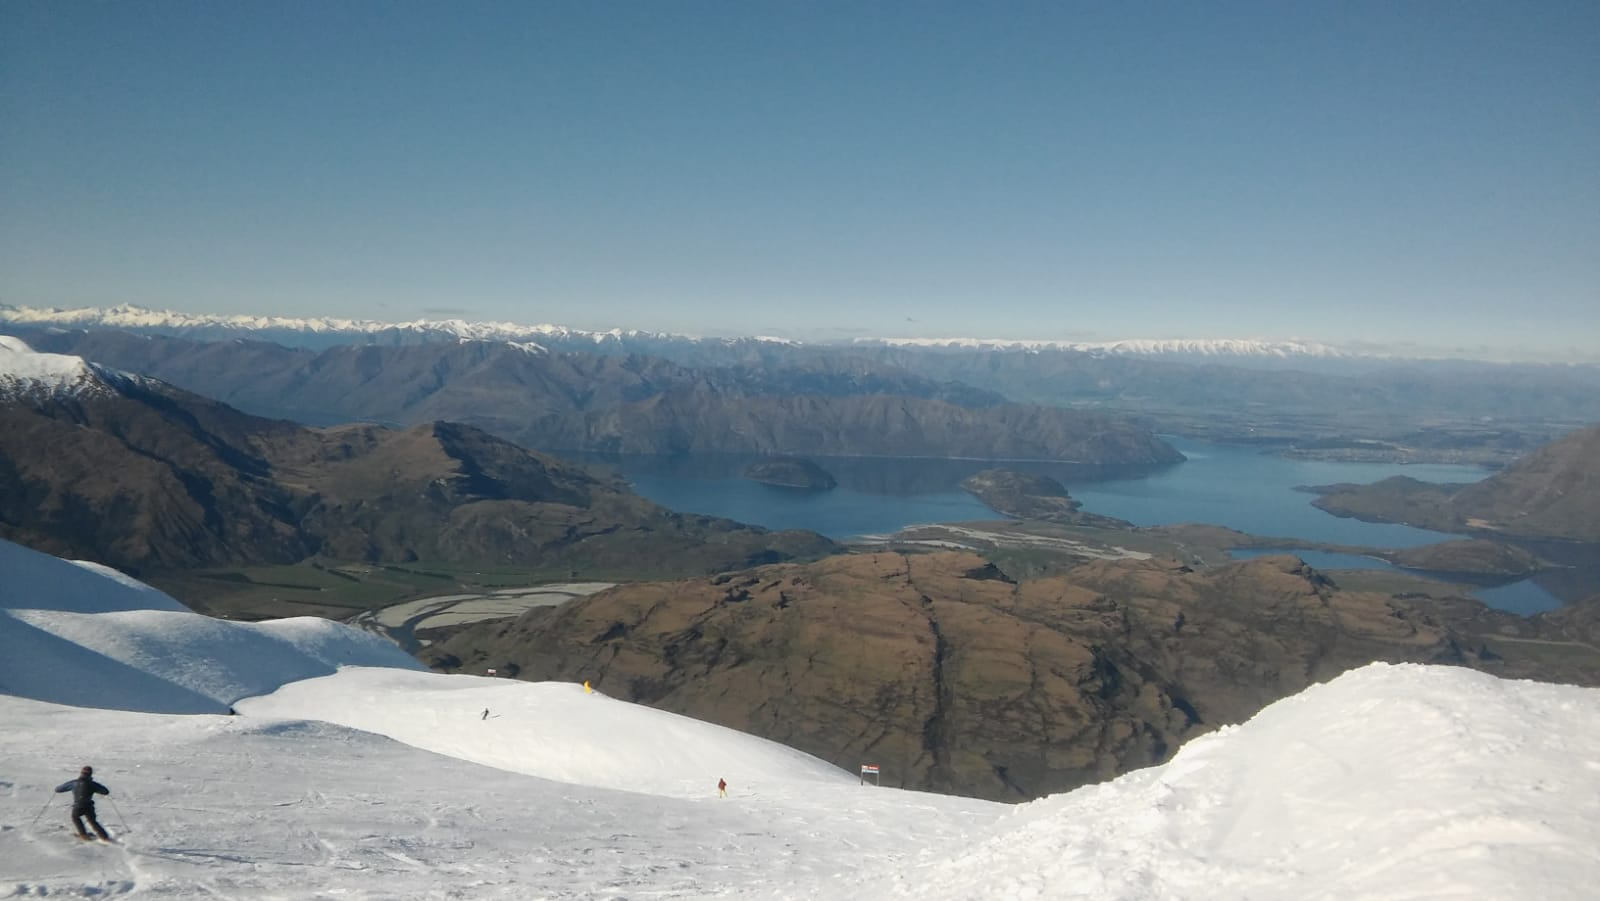 Ski slope at Treble Cone with view of Mt. Aspiring National Park